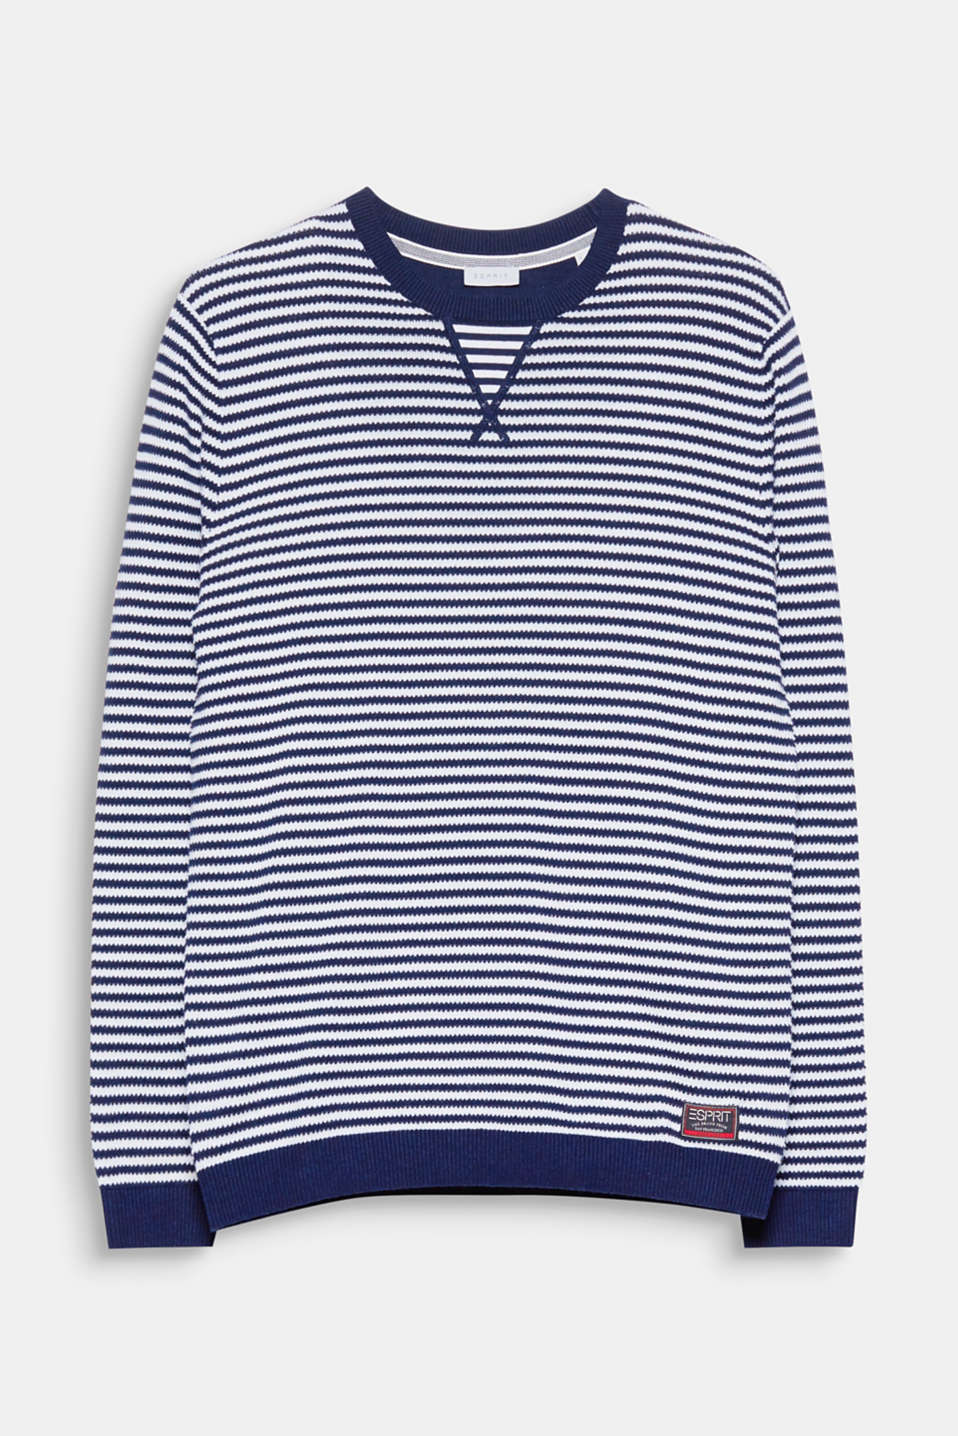 Nautical textured stripes make this jumper an exciting eye-catching piece for your look!